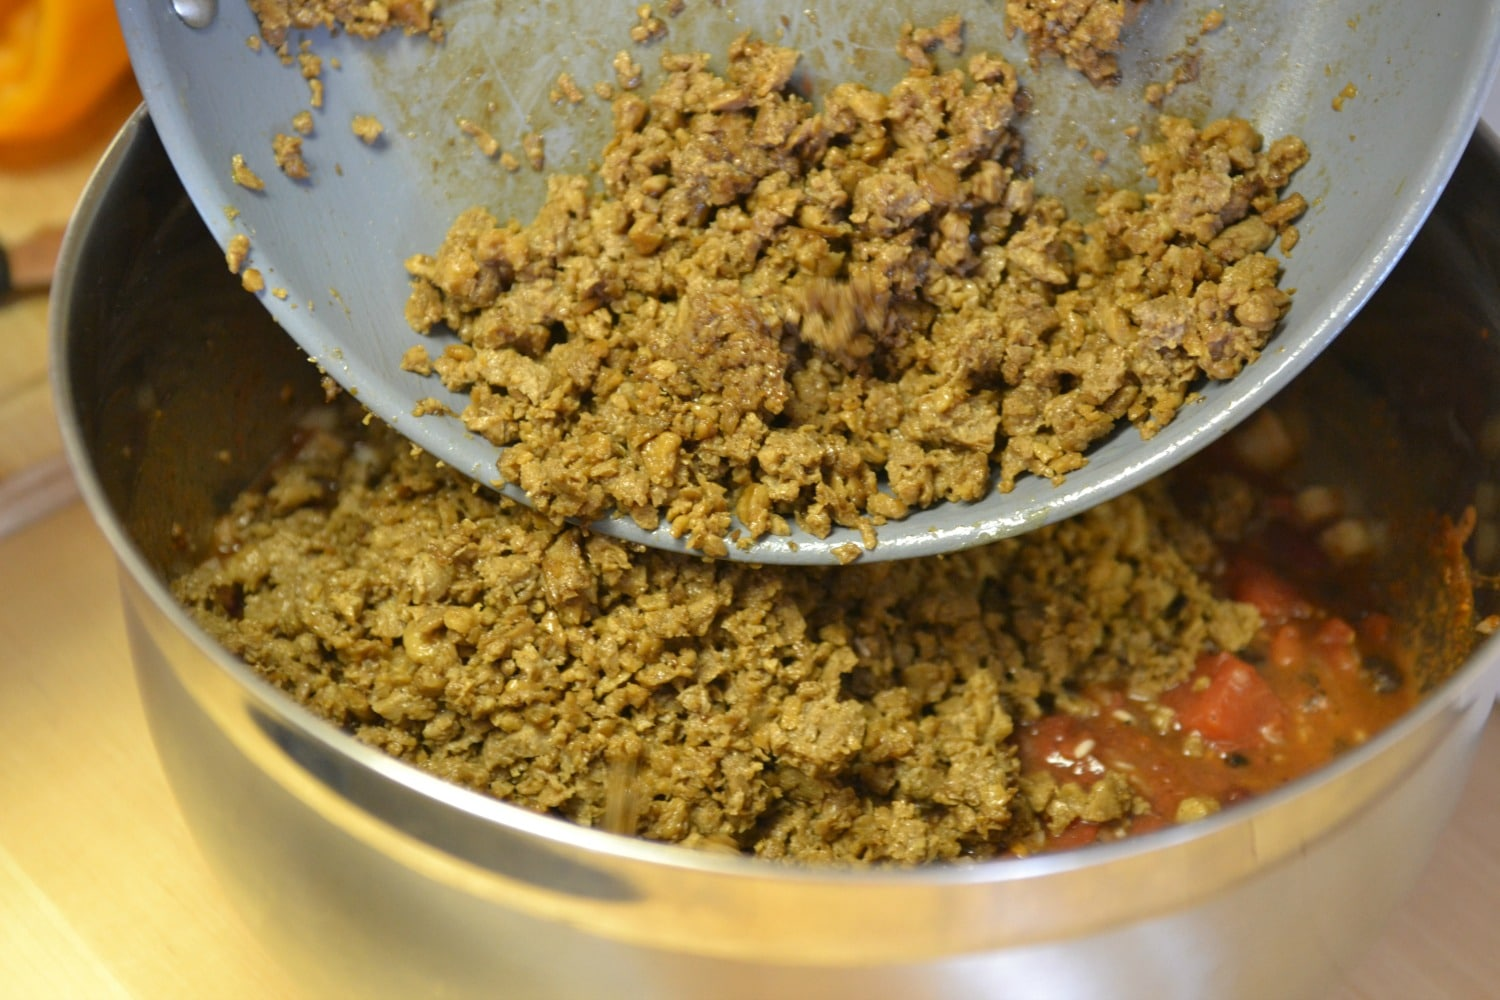 Add the ground beef or vegetarian crumbles into the sauce mixture.